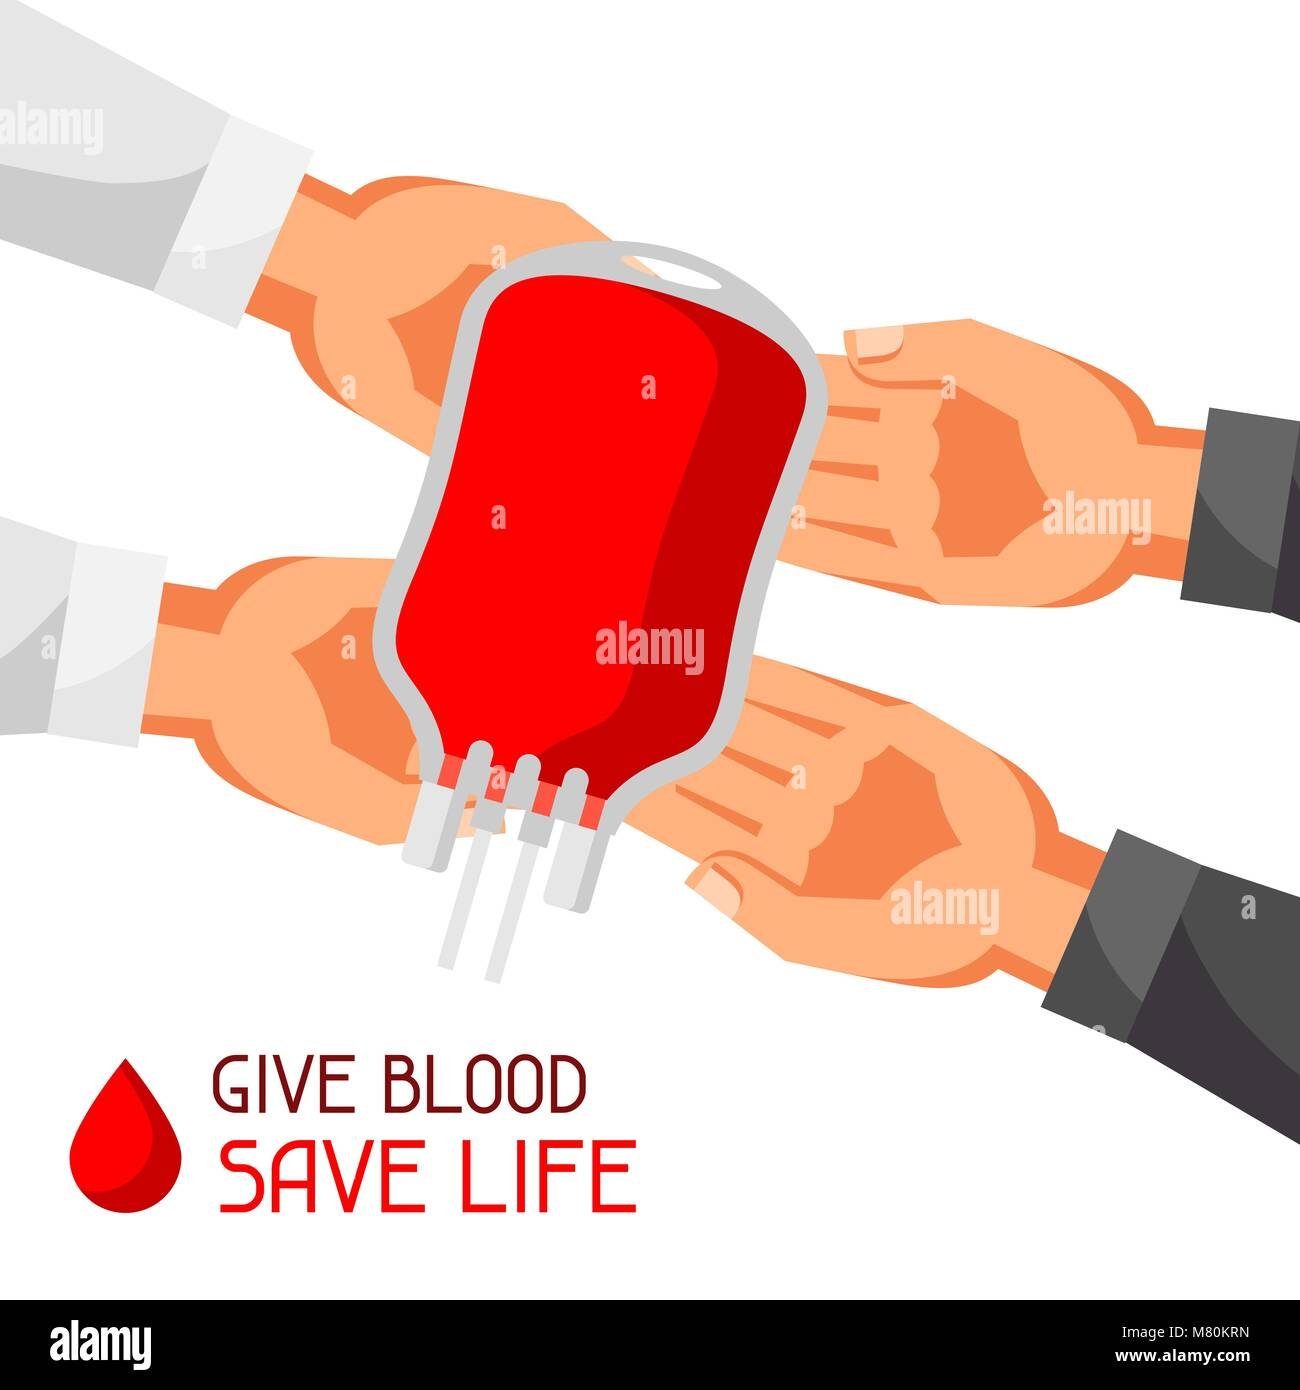 Donate blood save life. Medical and healthcare concept - Stock Image